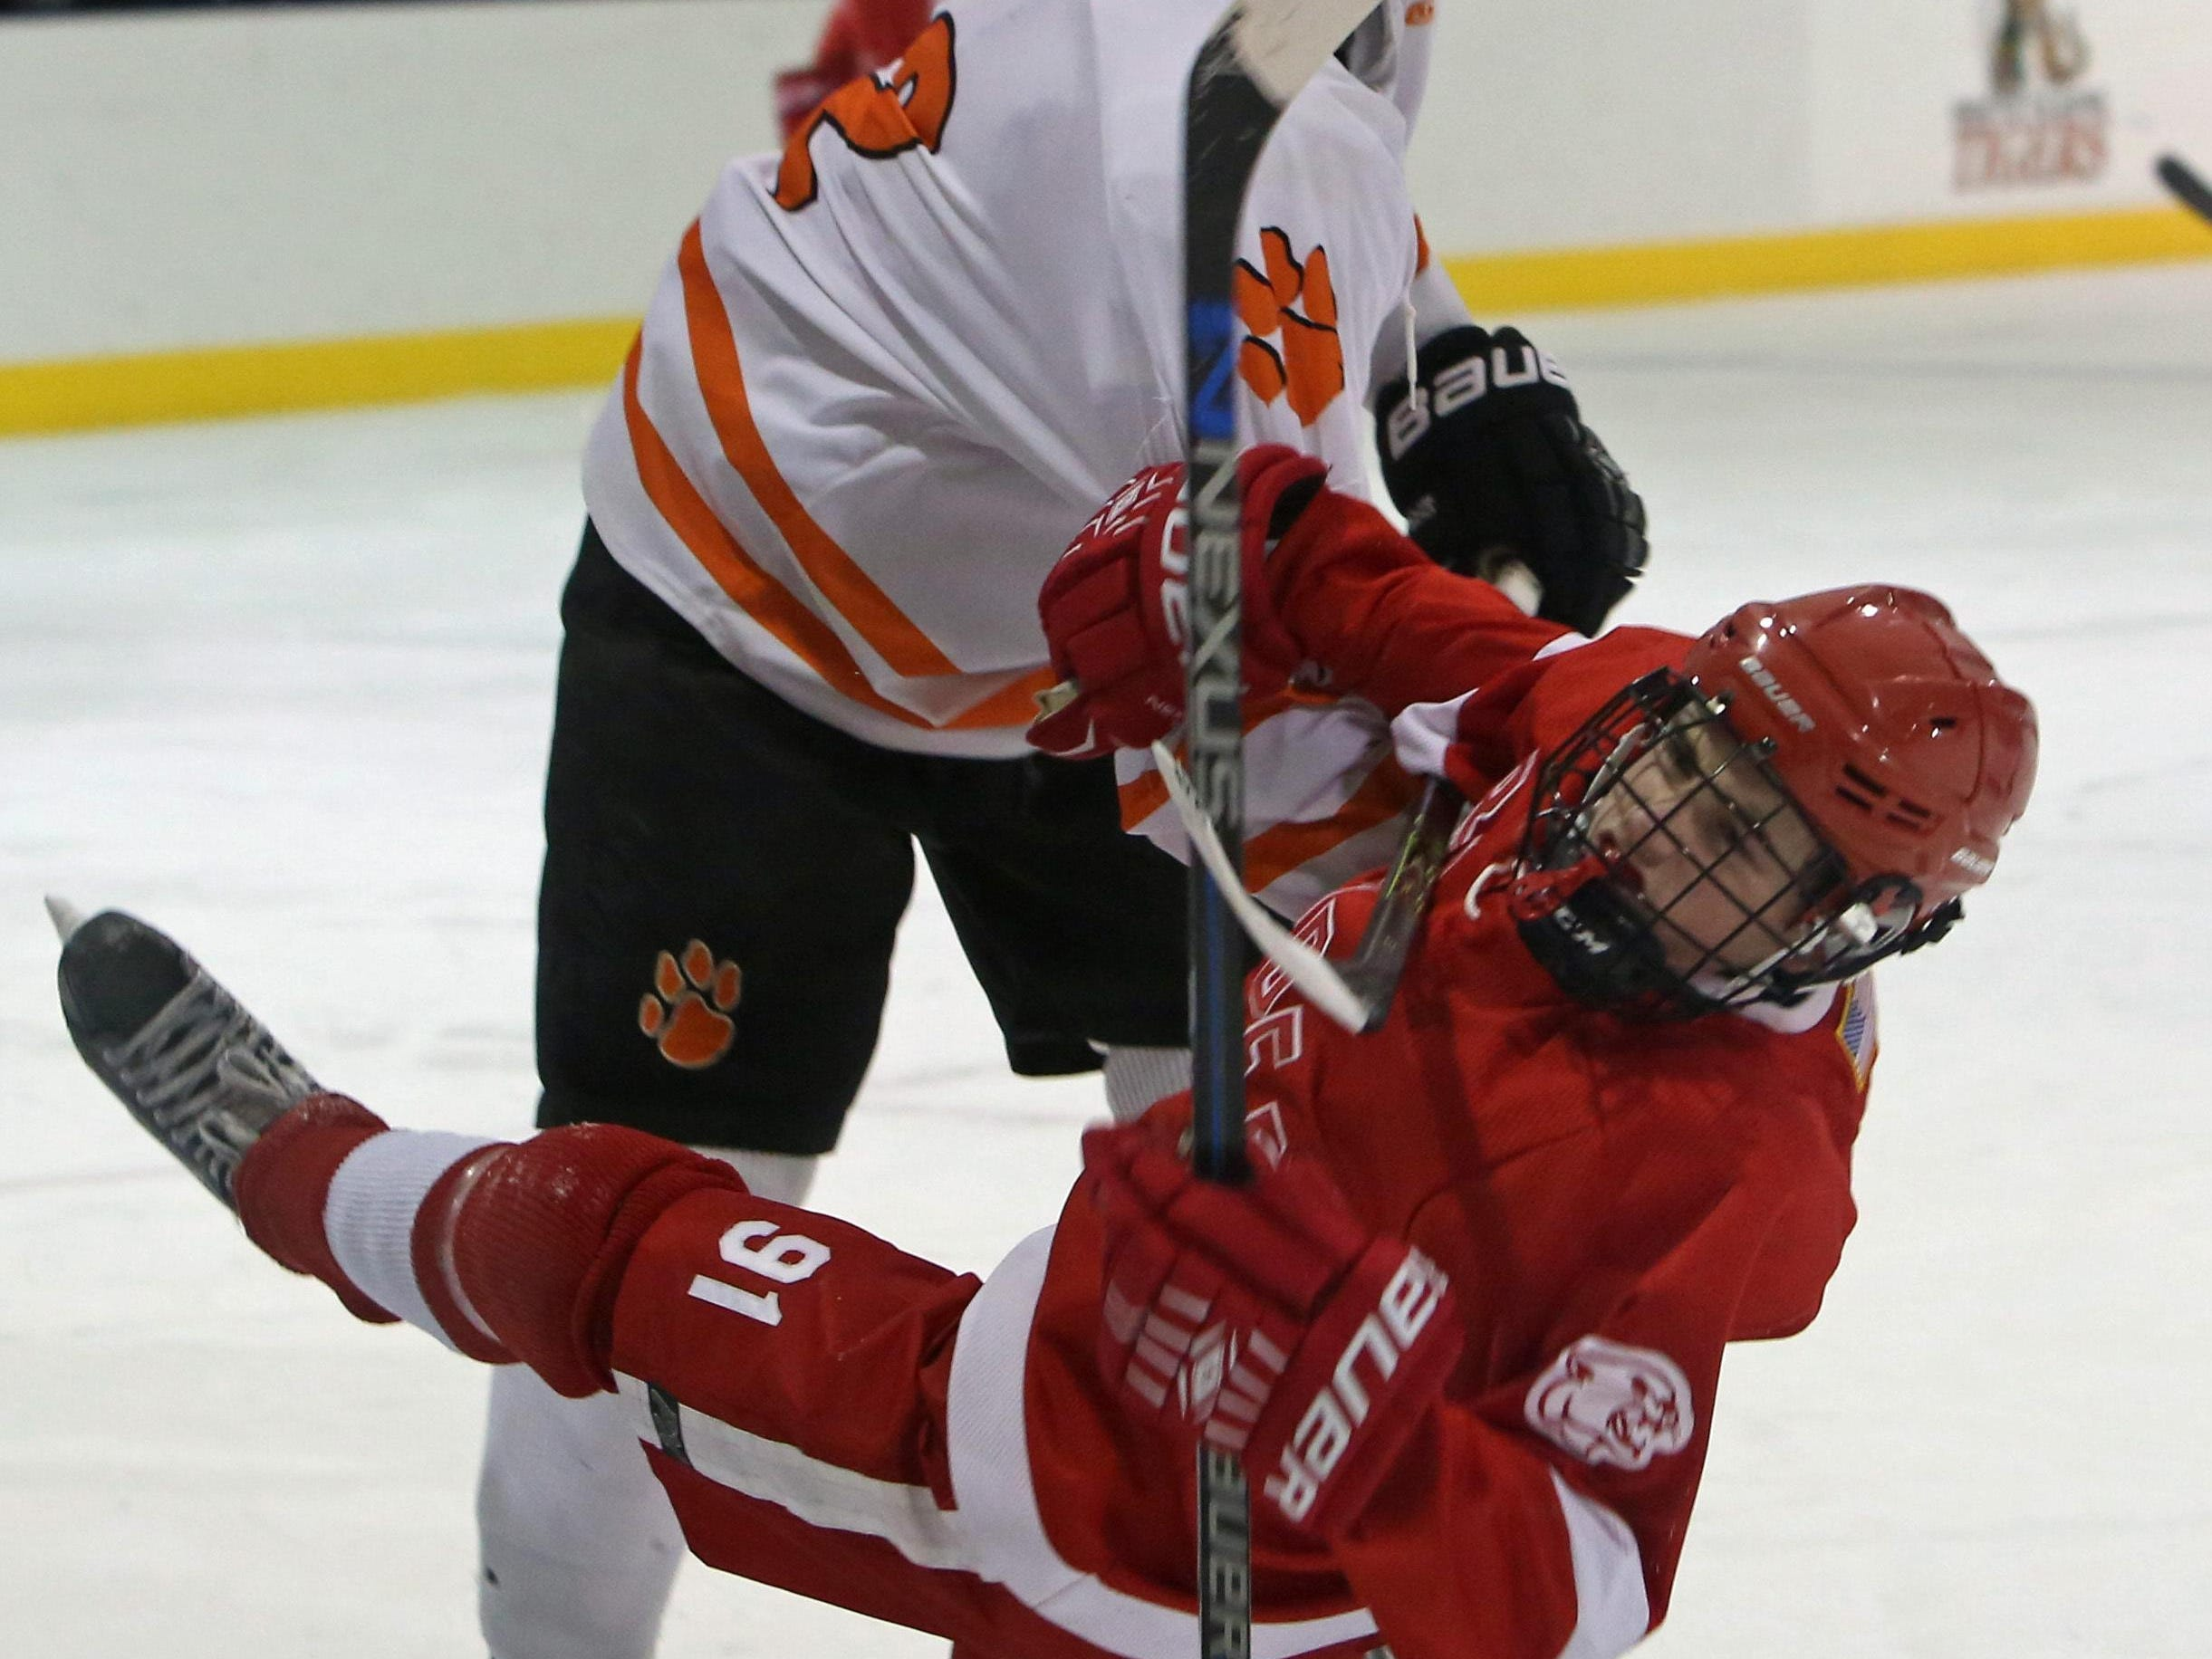 White Plains' James Garnett hits North Rockland's Chris Hilliard during a game at Ebersole Ice Rink in White Plains on Thursday. The teams skated to a 4-4 tie.